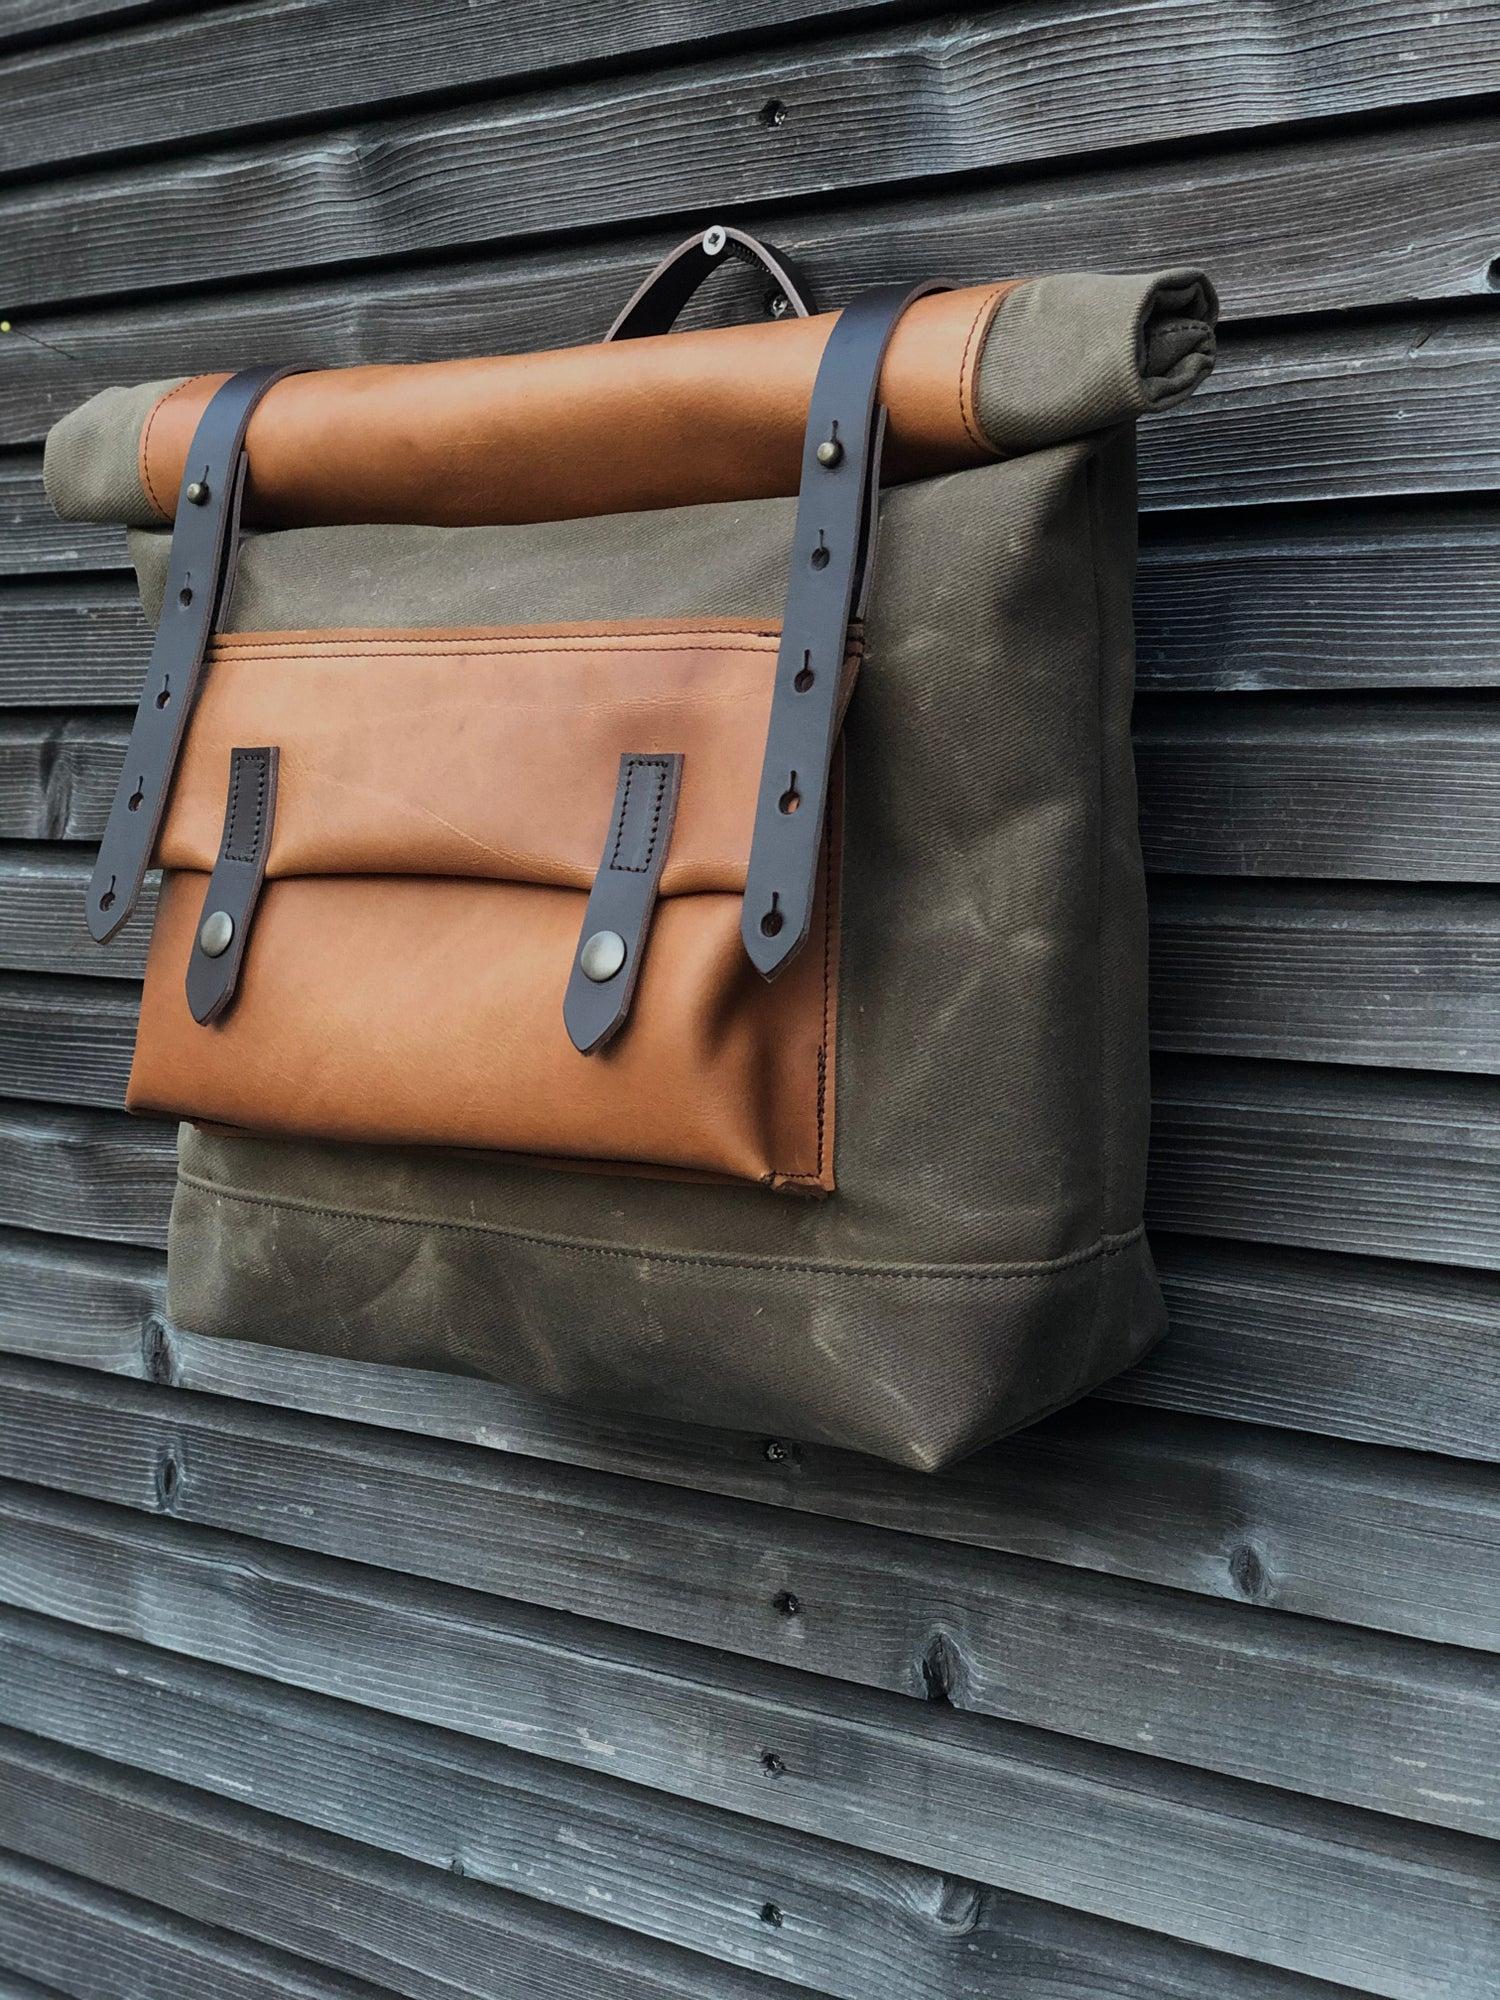 Image of Saddle bag in waxed canvas leather Super73 E-bike bag Motorcycle bag Bicycle bag in waxed canvas and